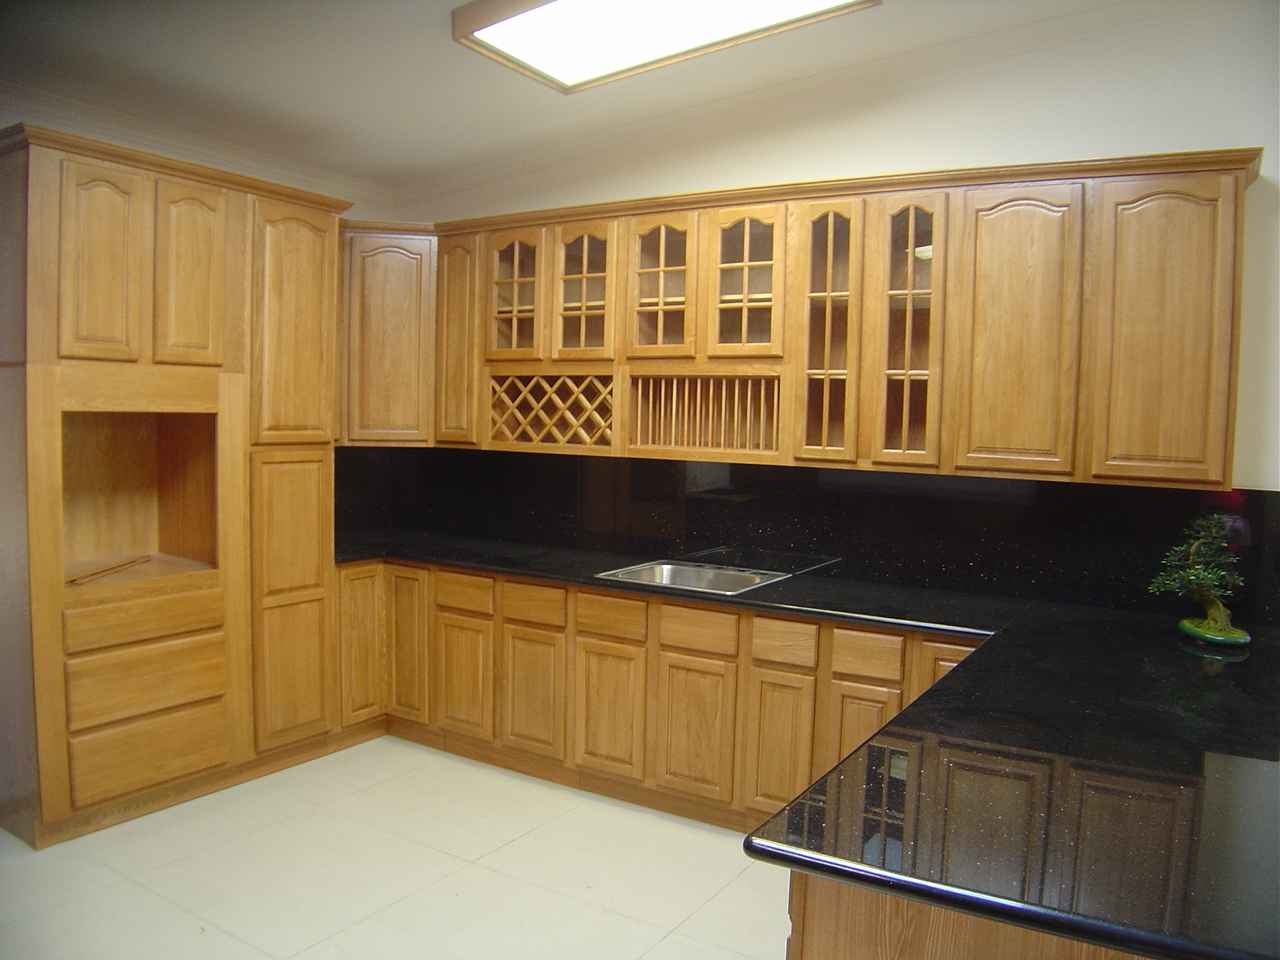 Kitchen Countertops Design 2